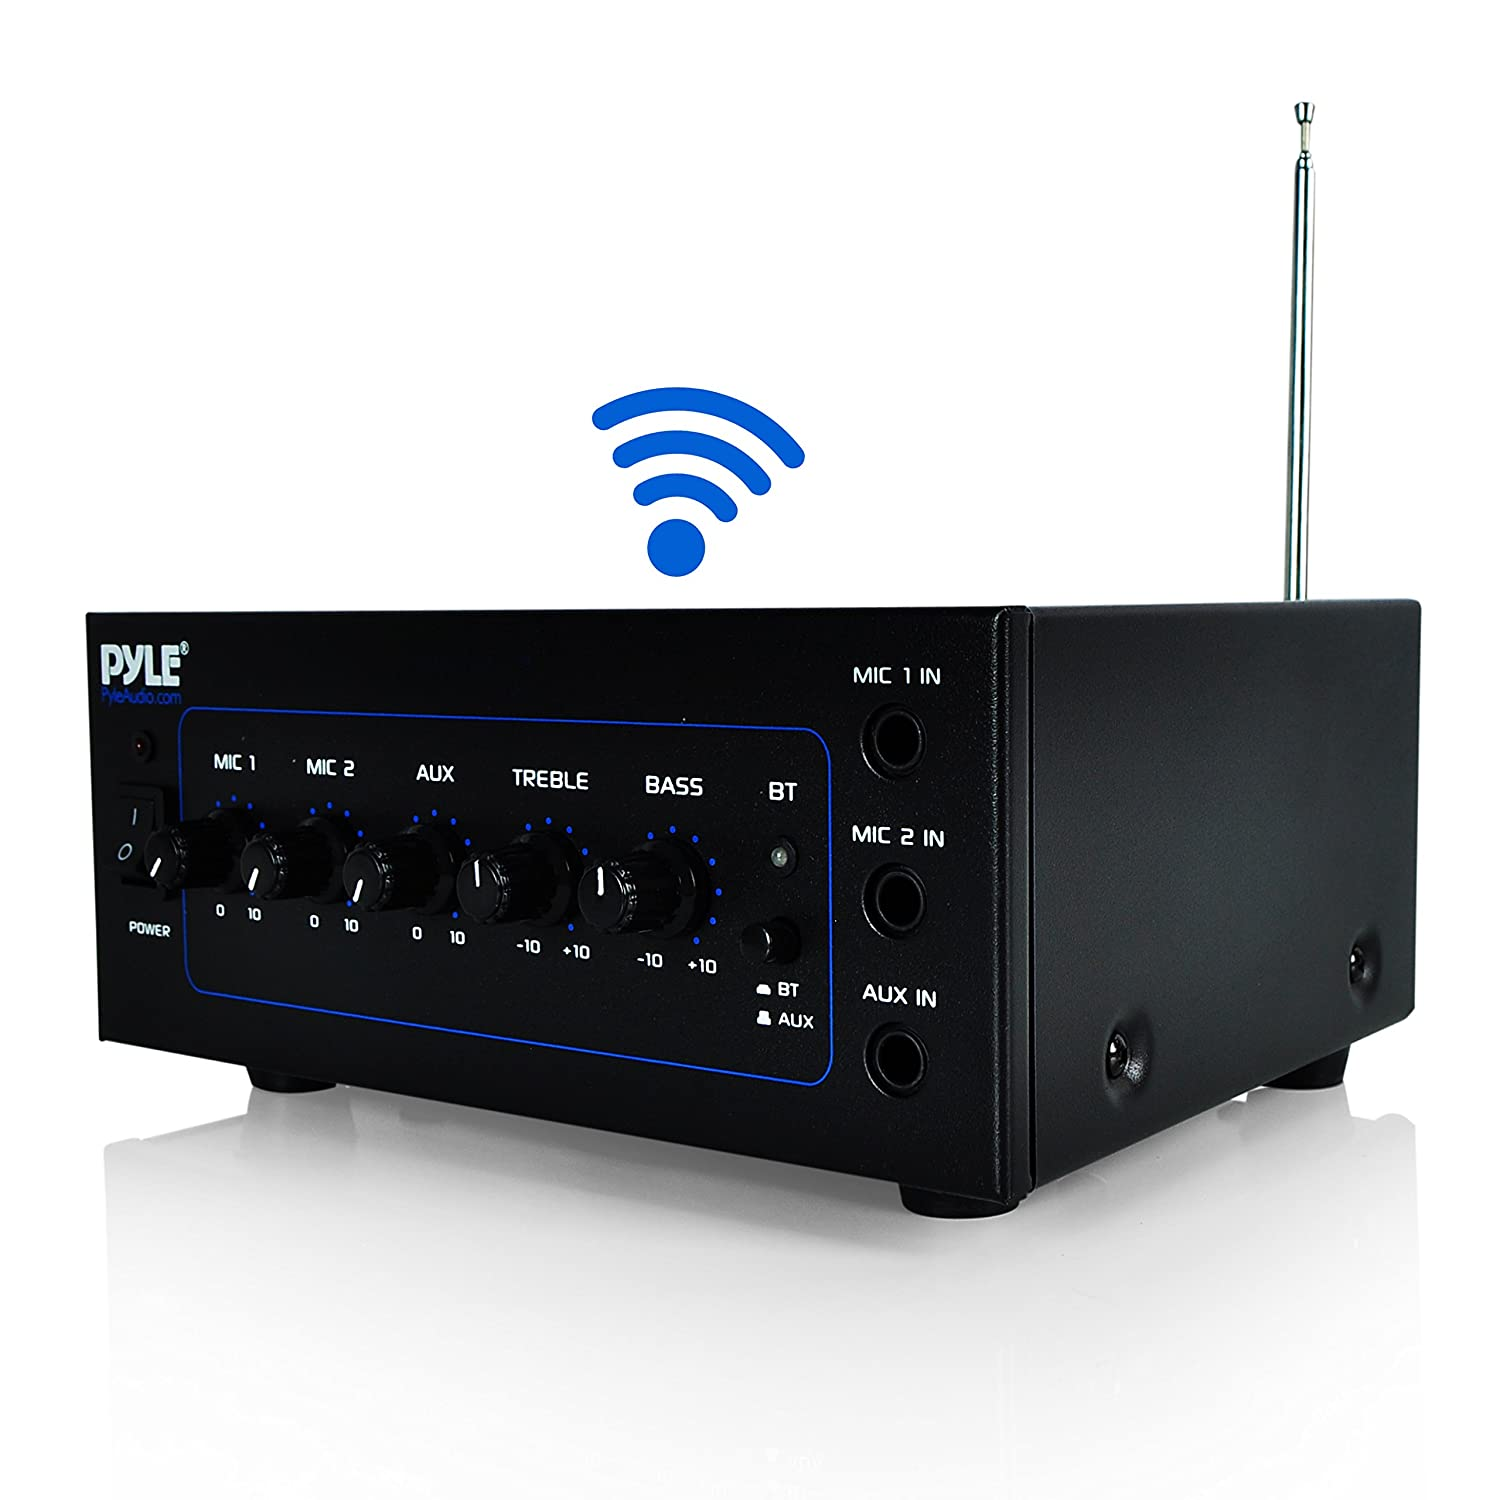 Upgraded Version Pyle Bluetooth Speaker Amplifier | Power Amp W Wireless Streaming | 40 Watt W 2 Microphone Inputs | Mic Talkover | Transformers Speaker Output: 25V/70V | DJ Equipment (PCM211BT) 4334197065